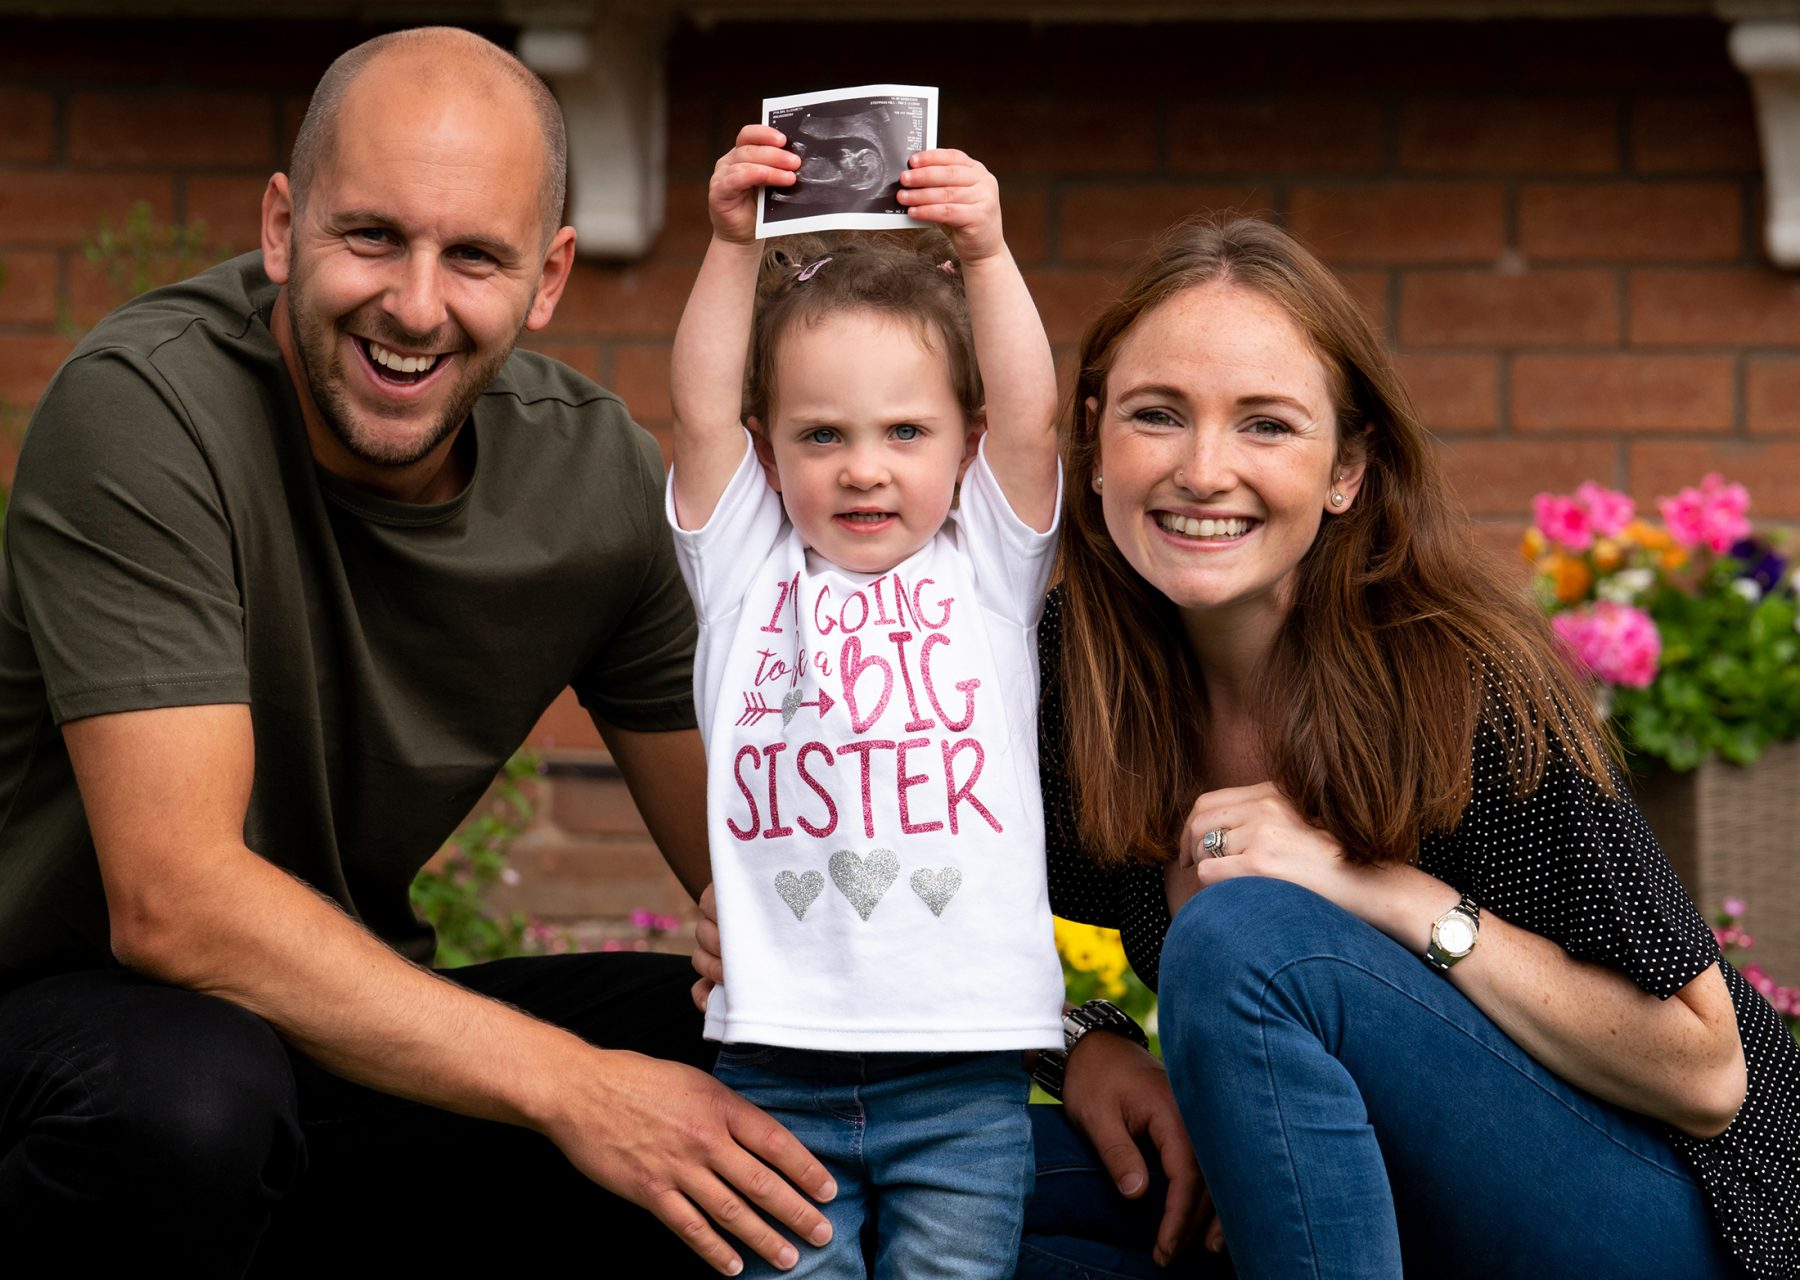 A Stockport Family have their photograph taken on their doorstep